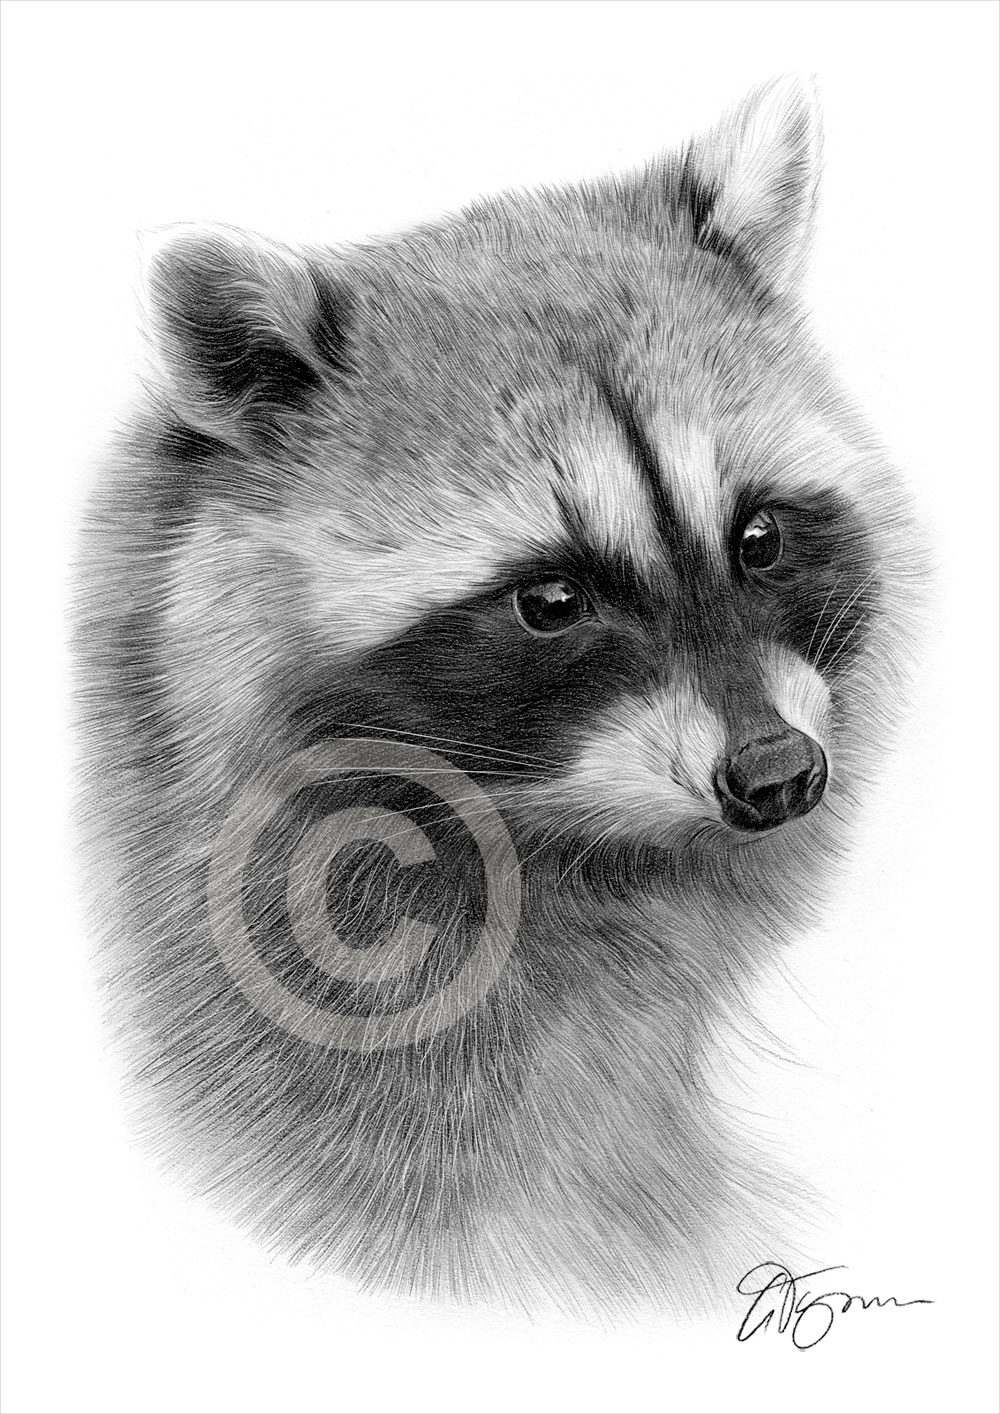 Drawn racoon pencil Tymon Pencil drawing by artist